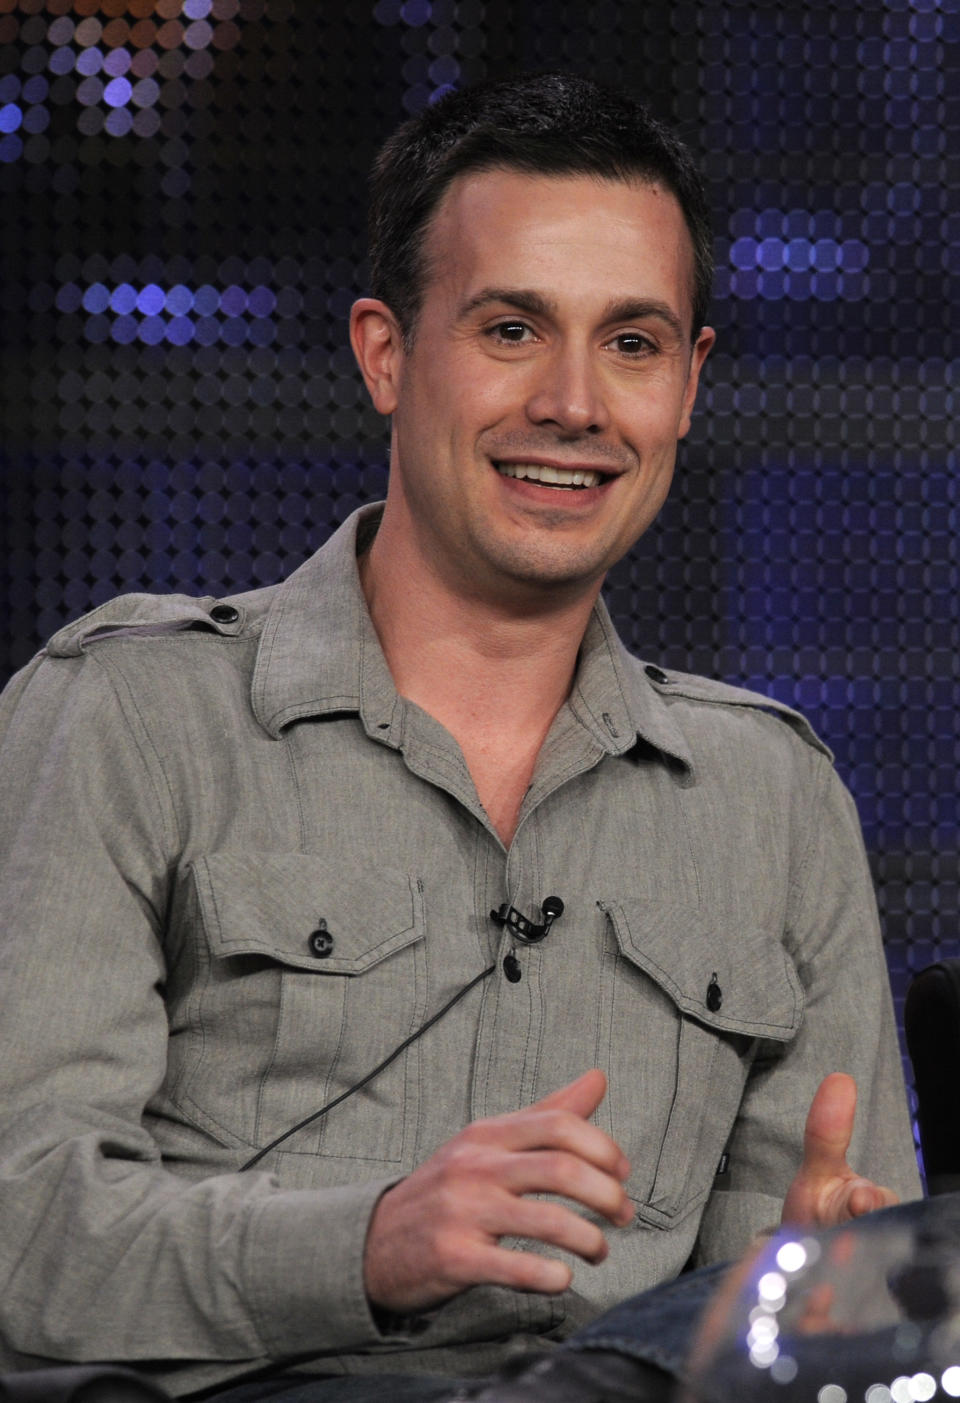 Freddie Prinze Jr., of the show 24, participates in a panel discussion at the FOX Television Critics Association winter press tour in Pasadena, Calif., Monday, Jan. 11, 2010. (AP Photo/Chris Pizzello)